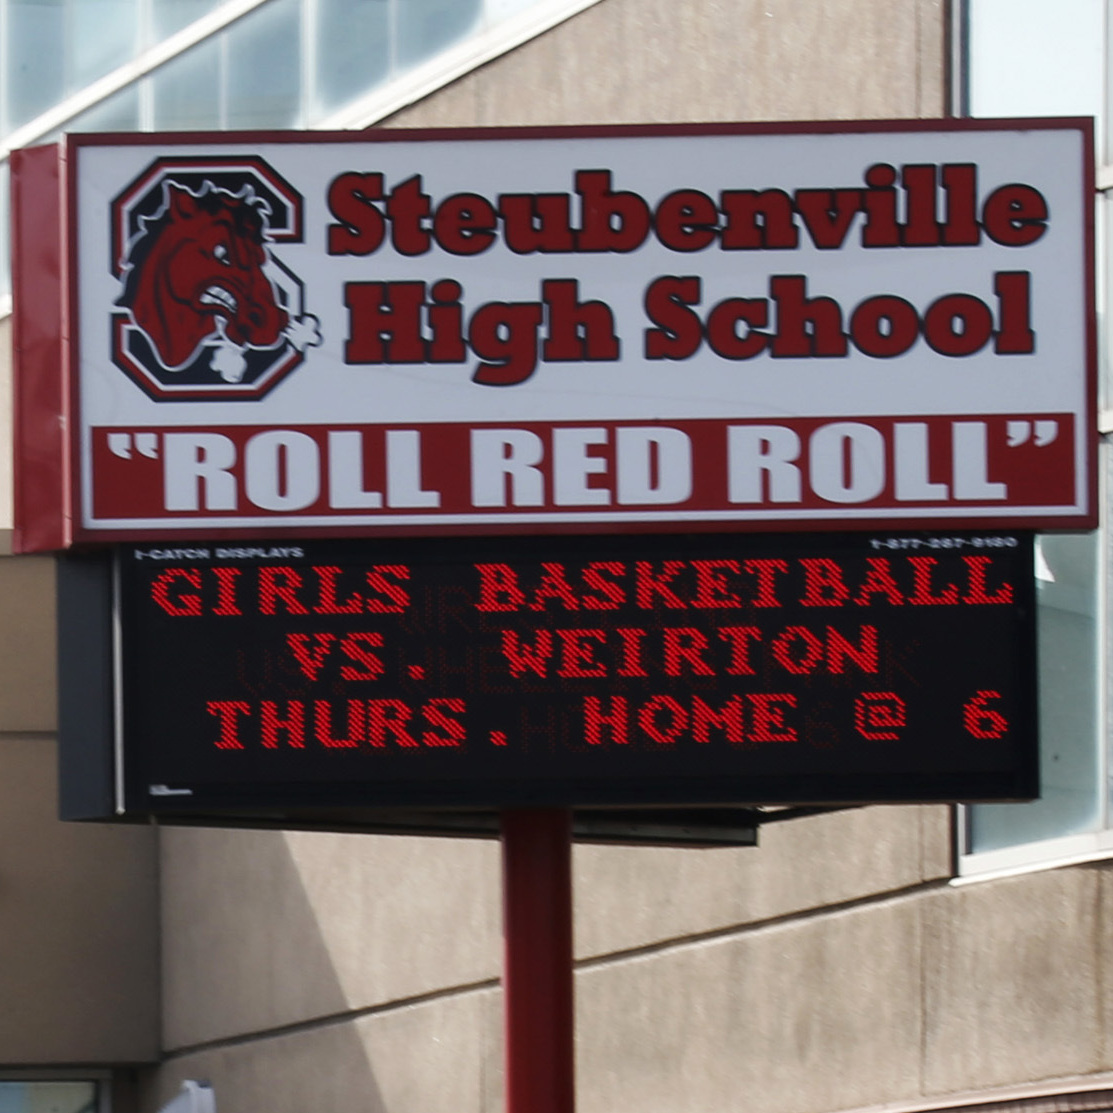 A sheriff's vehicle patrols Steubenville High School on Tuesday, after the city's schools were locked down due to an alleged shooting threat made via Twitter.